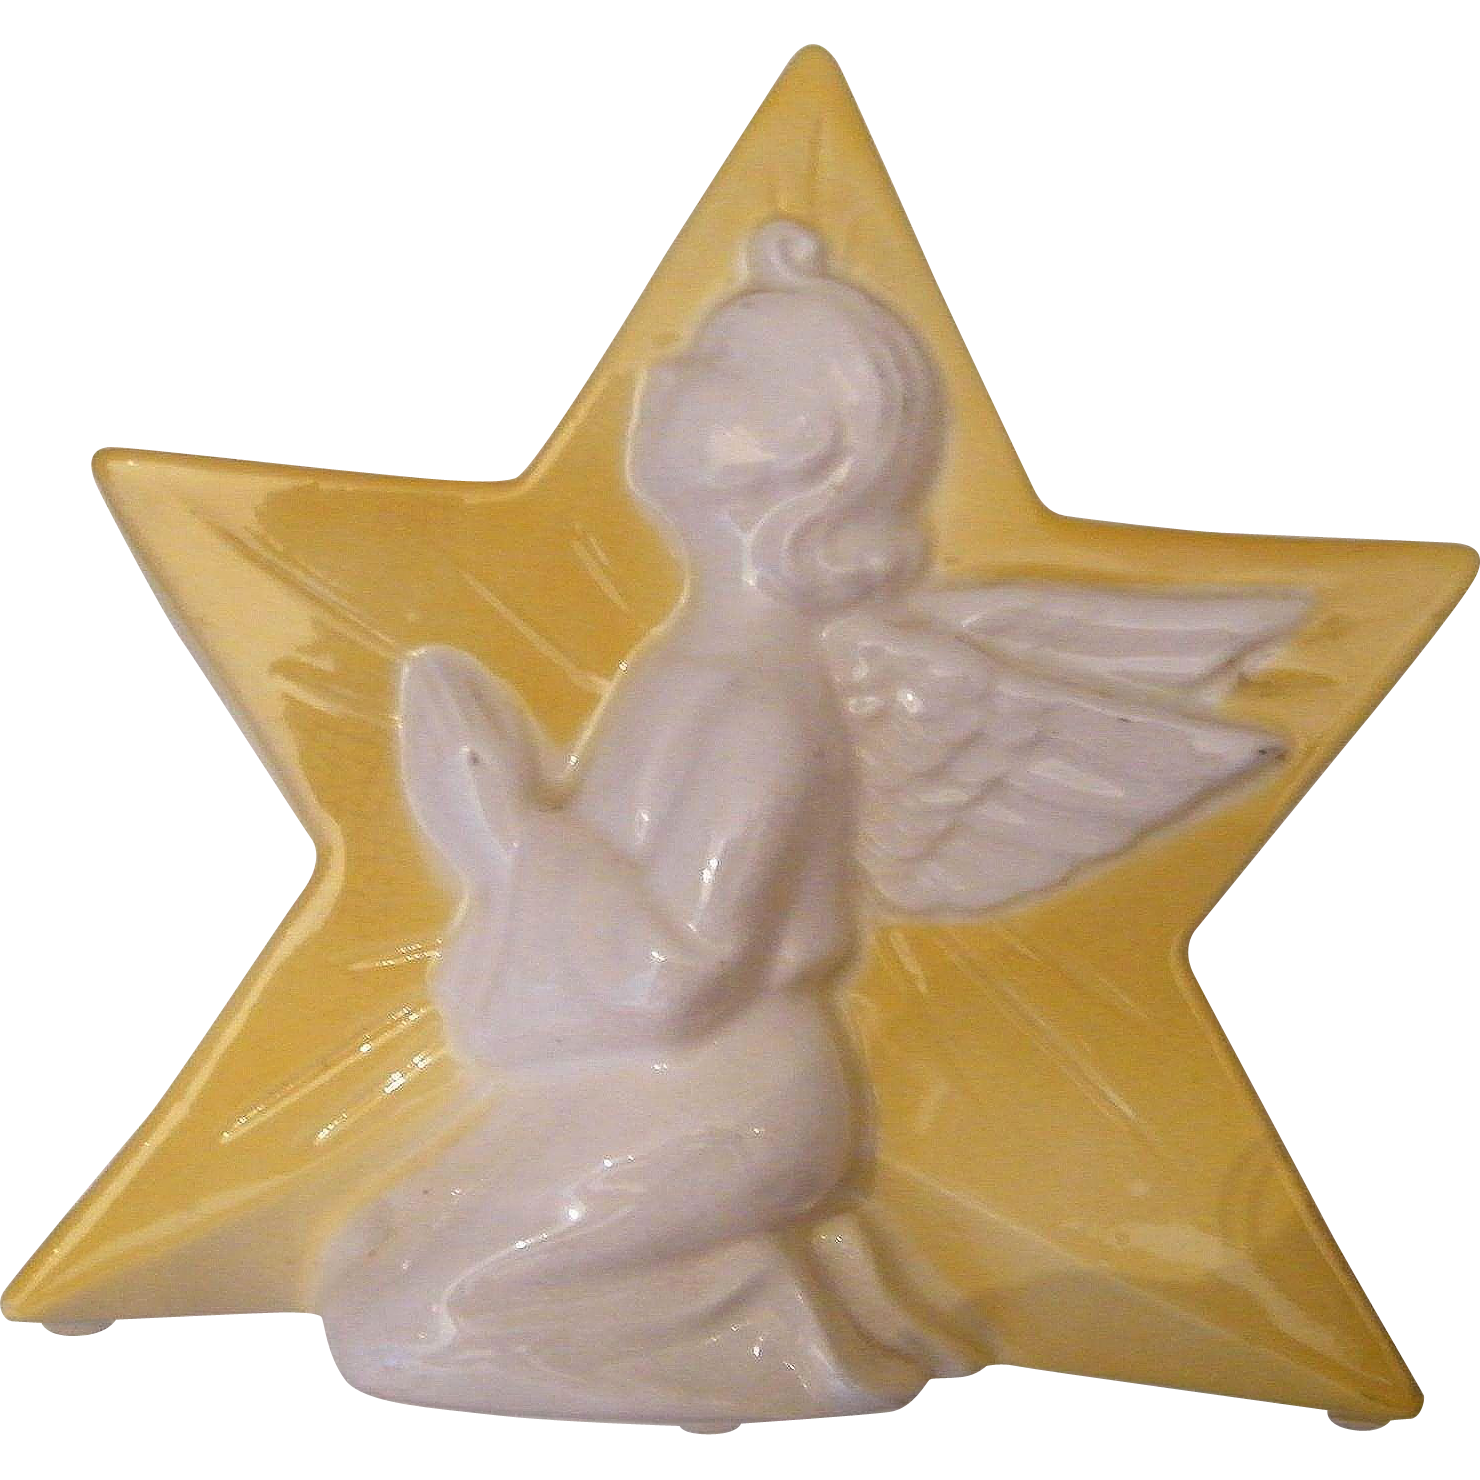 Yellow Ceramic Star With White Relief Praying Angel..Candle Holder / Planter / Vase..Spalding China Co...Excellent Condition..2 Available